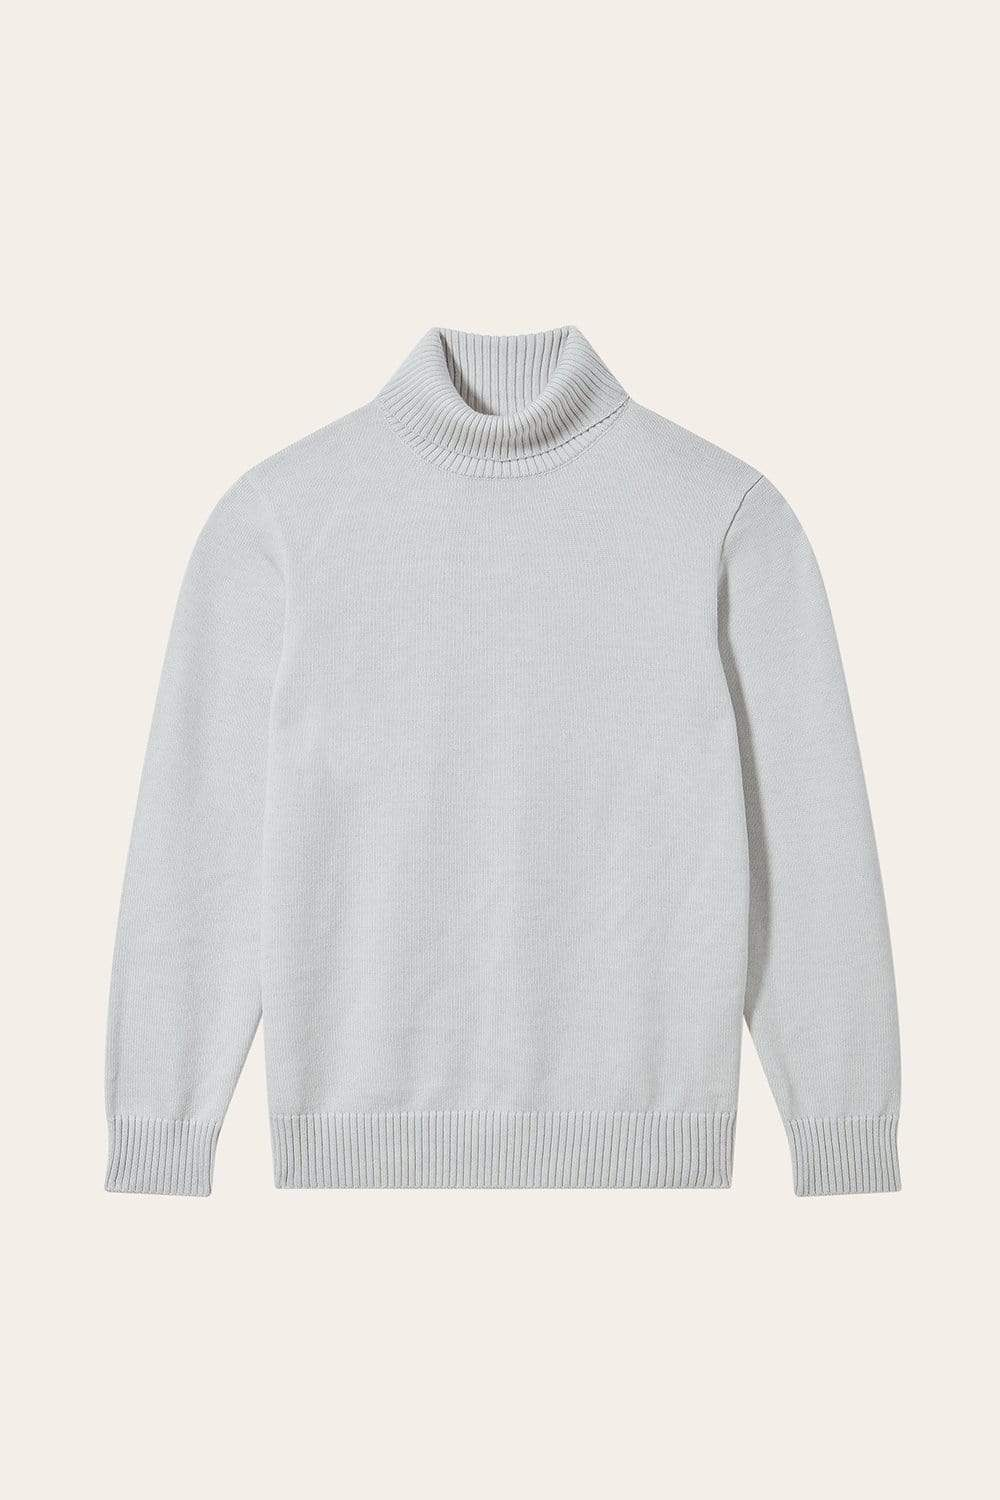 Twist Sweater - Ecru